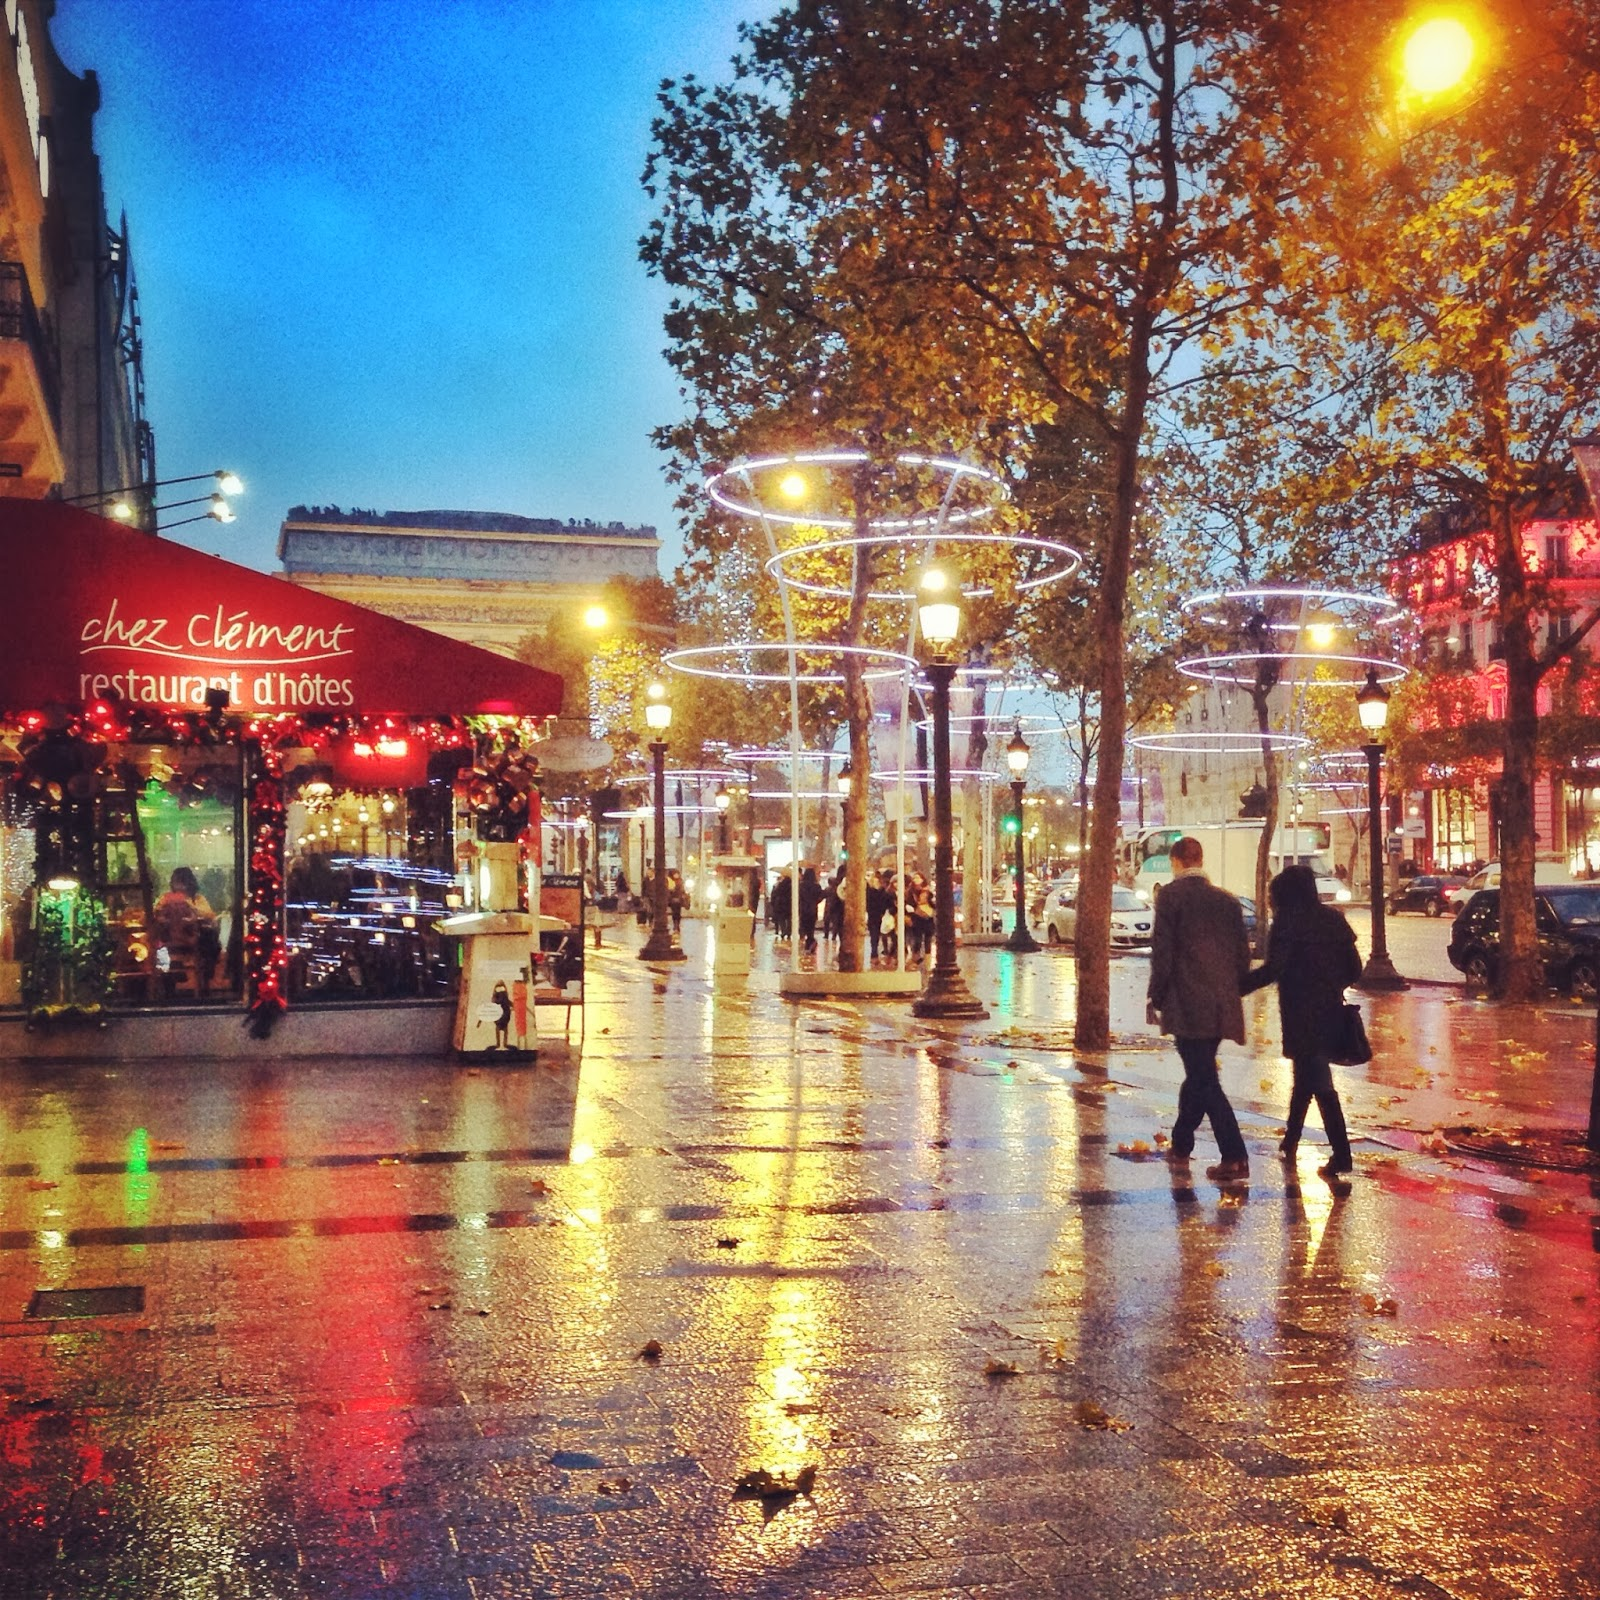 Rainy streets of paris along the Champs d'Elysee